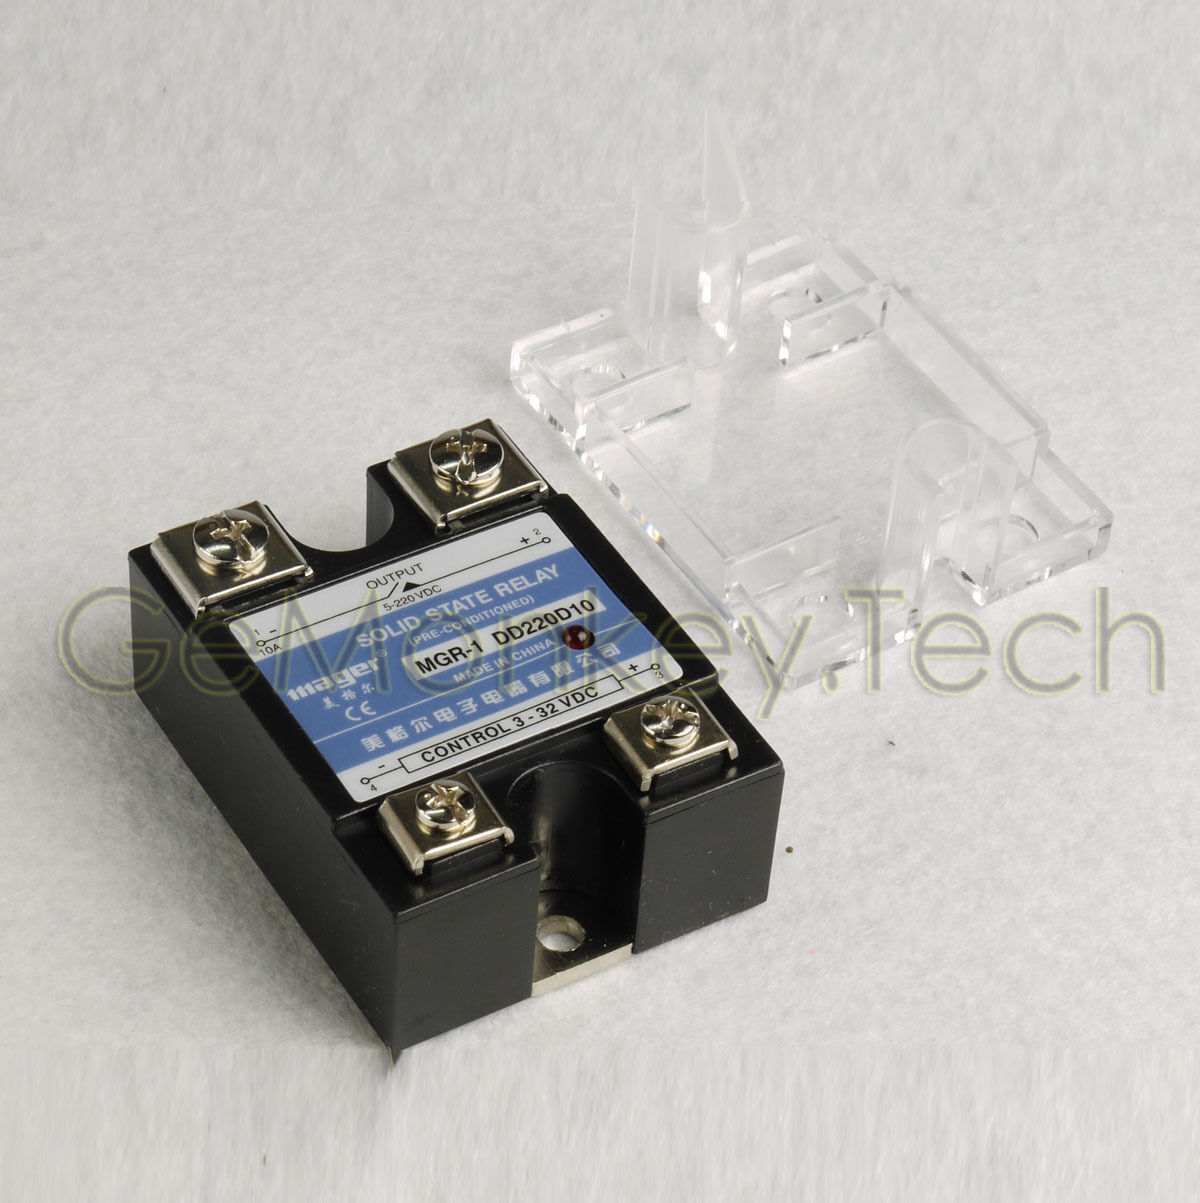 Solid State Relay Ssr Dc 10a 3 32vdc 5 220vdc 799 Picclick For 1 Of 4free Shipping